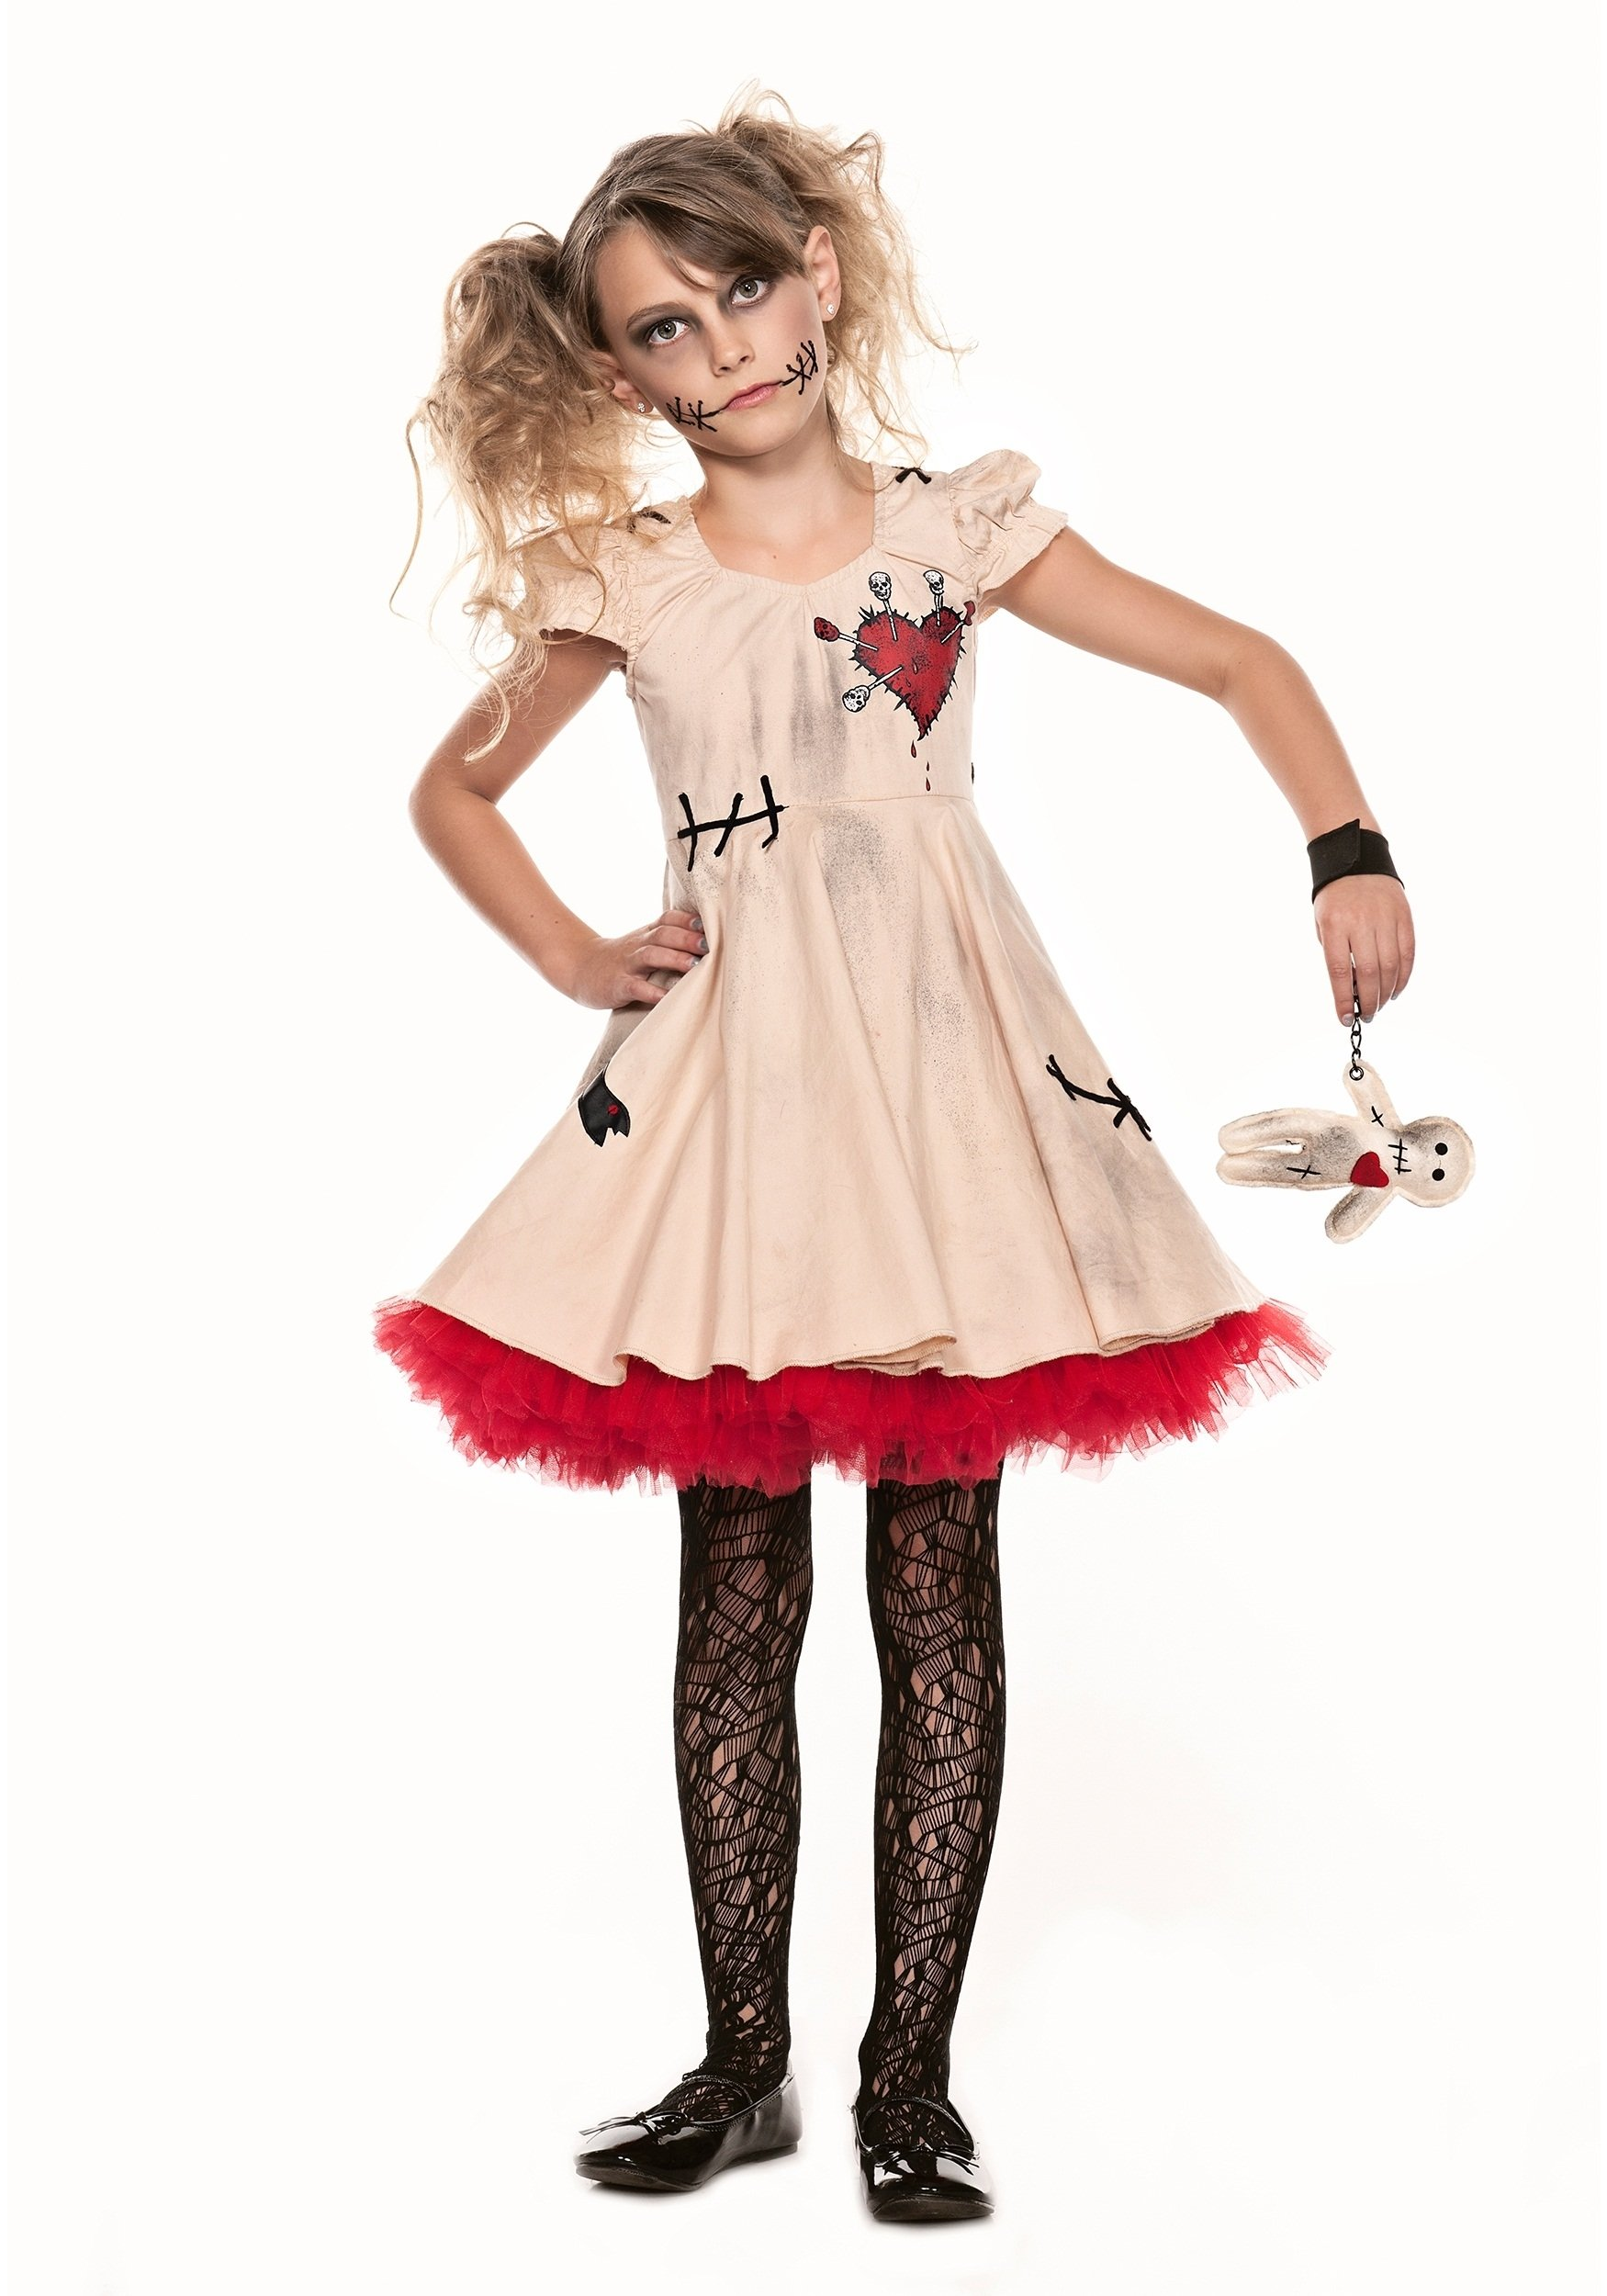 10 Fashionable Scary Costume Ideas For Girls child voodoo doll costume